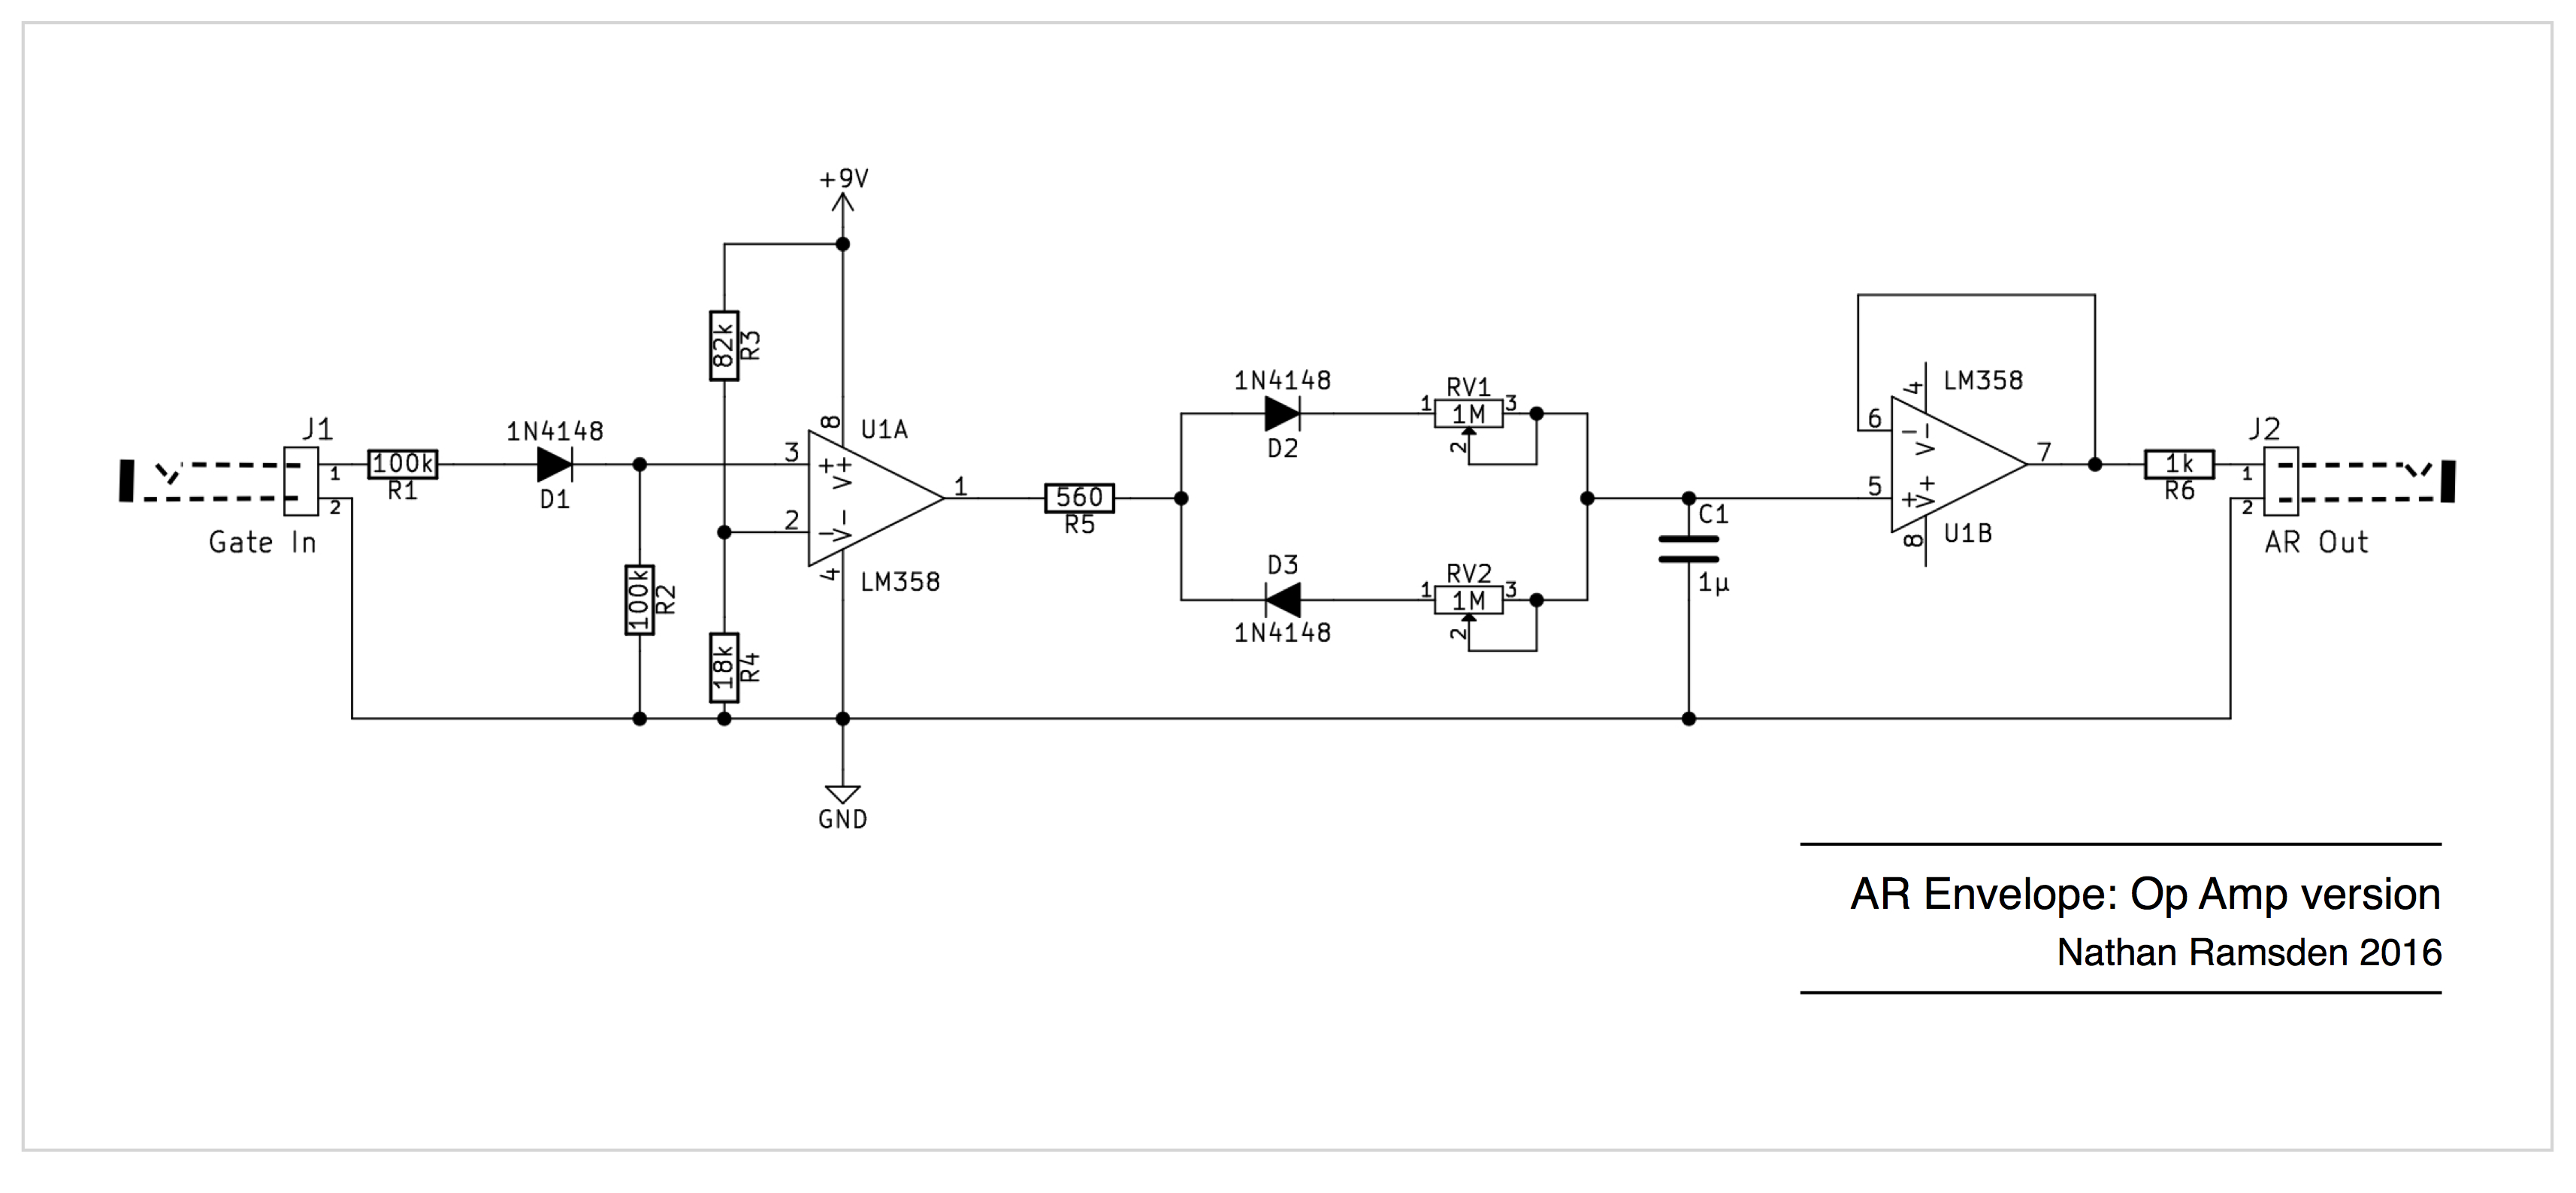 Envelope Circuits A Simple Ar Design Using Op Amps Synthnerd Tone Generator Circuit Diagram Operational Amplifier Attack Release